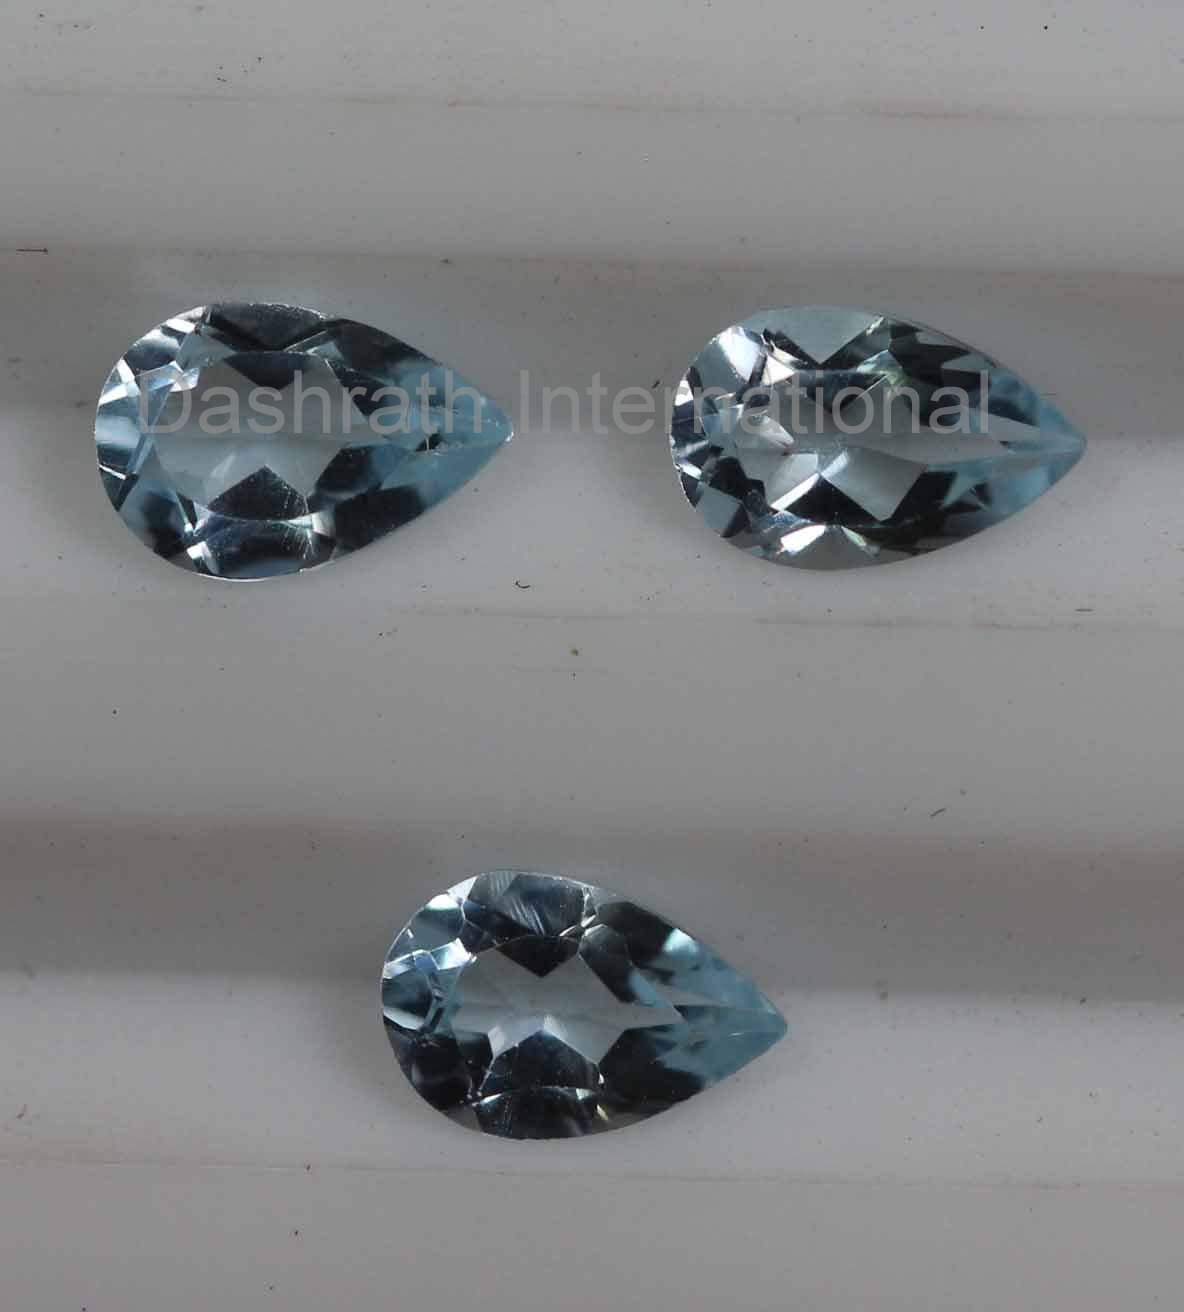 7x10mm Natural Sky Blue Topaz Faceted Cut Pear 1 Piece Top Quality Loose Gemstone